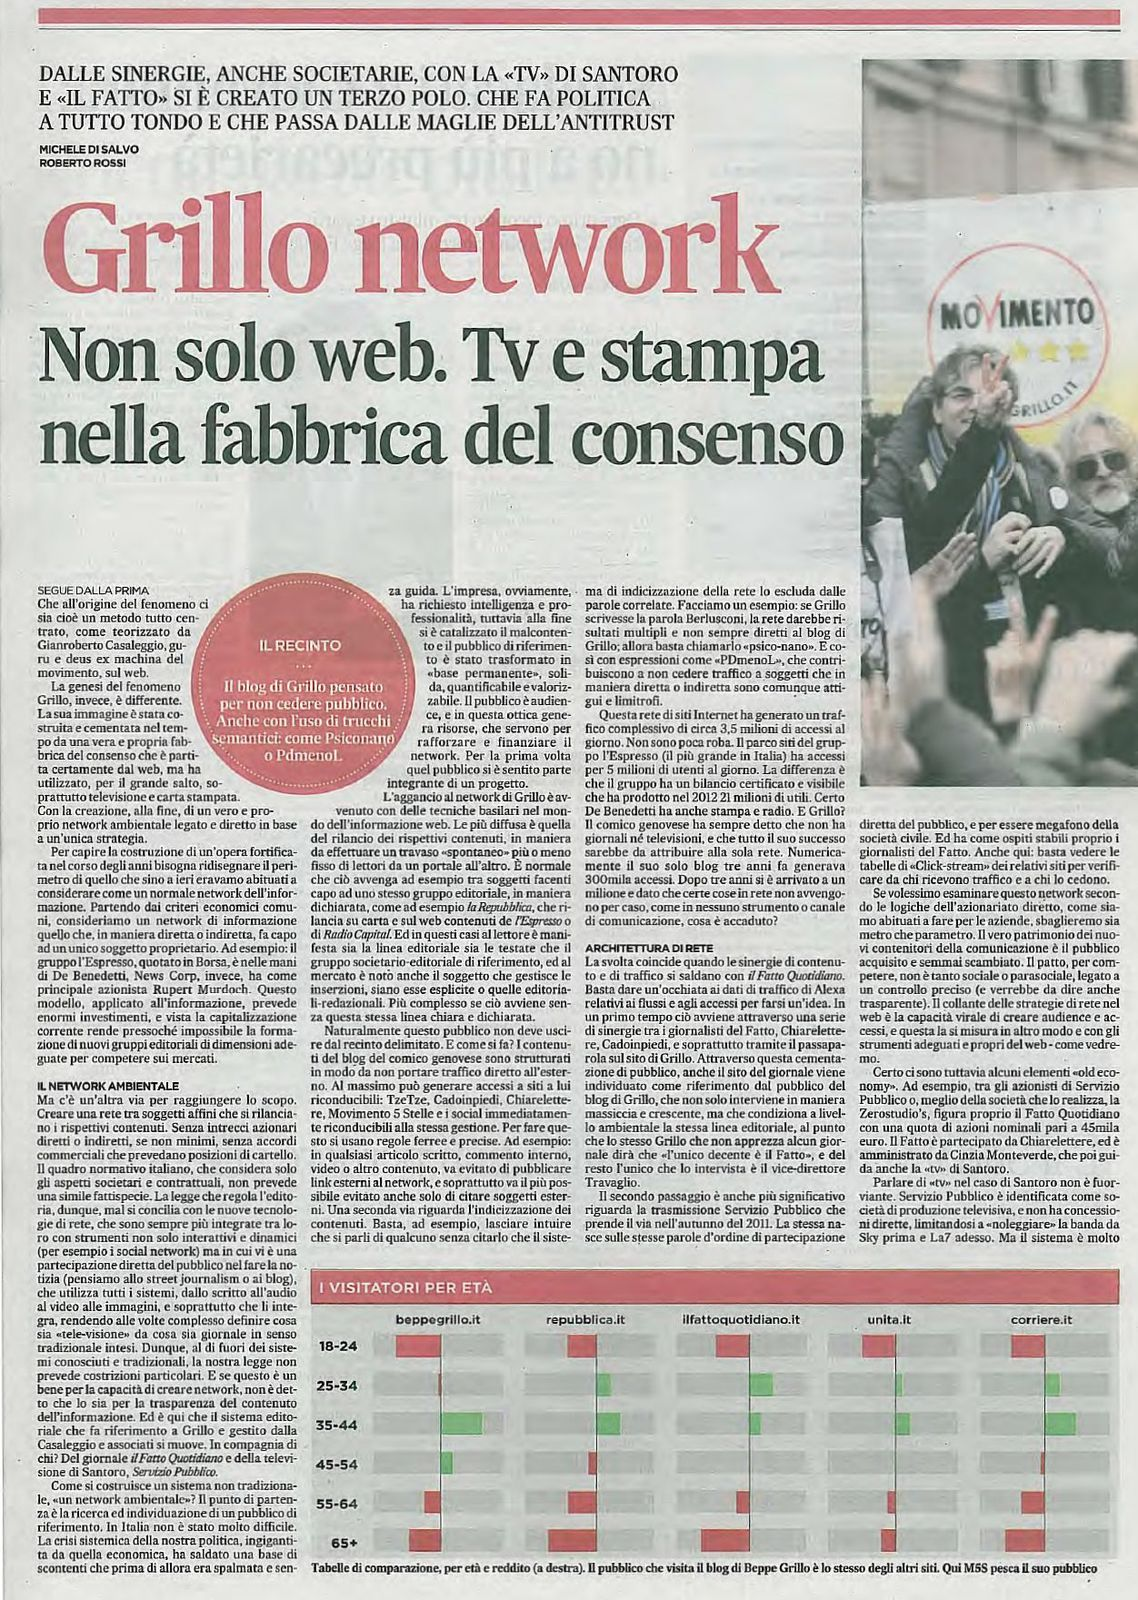 Il network ambientale a 5 stelle